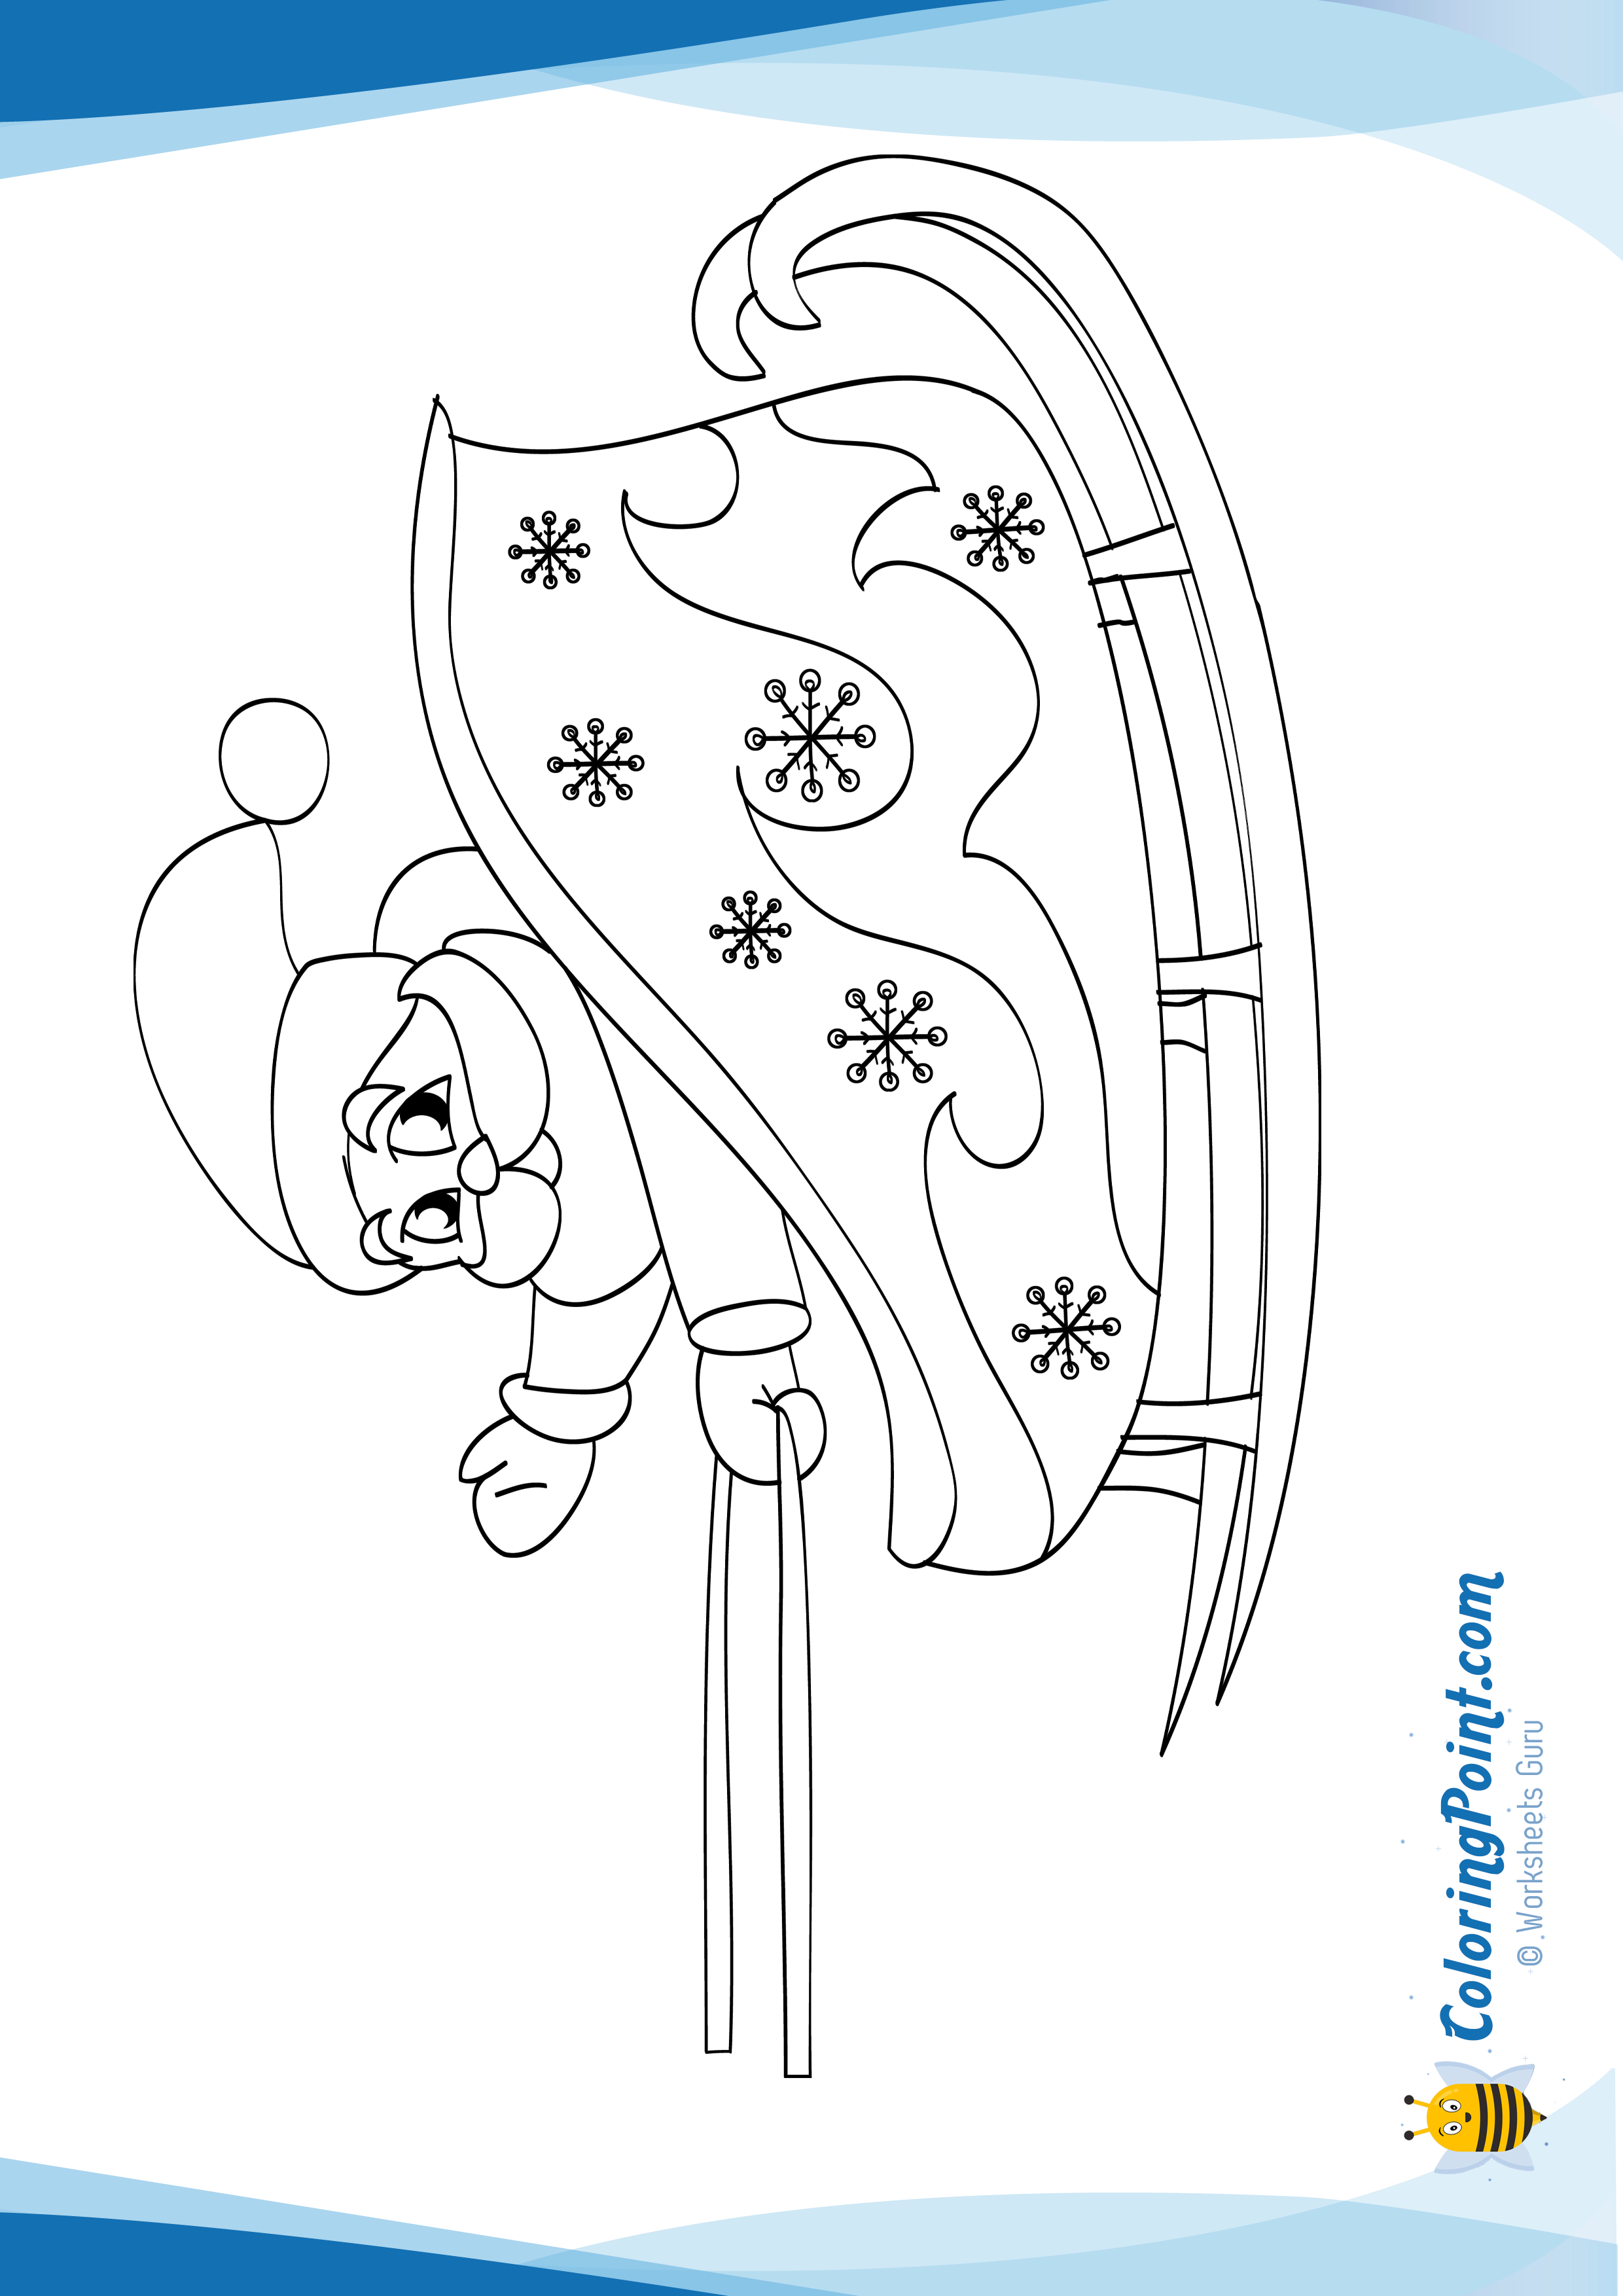 Santa Claus On His Sleigh Coloring Page There Is A New